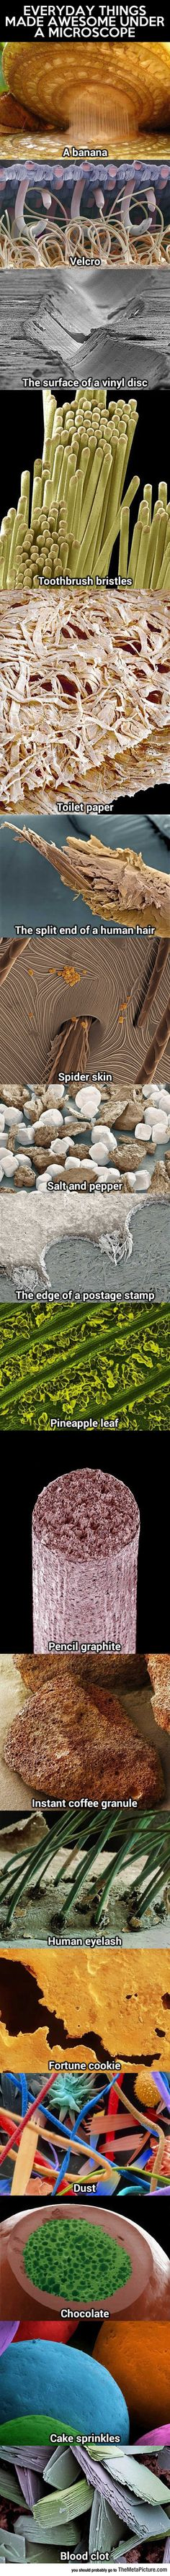 Everyday Things Under A Microscope.  Toilet paper looks horrifying